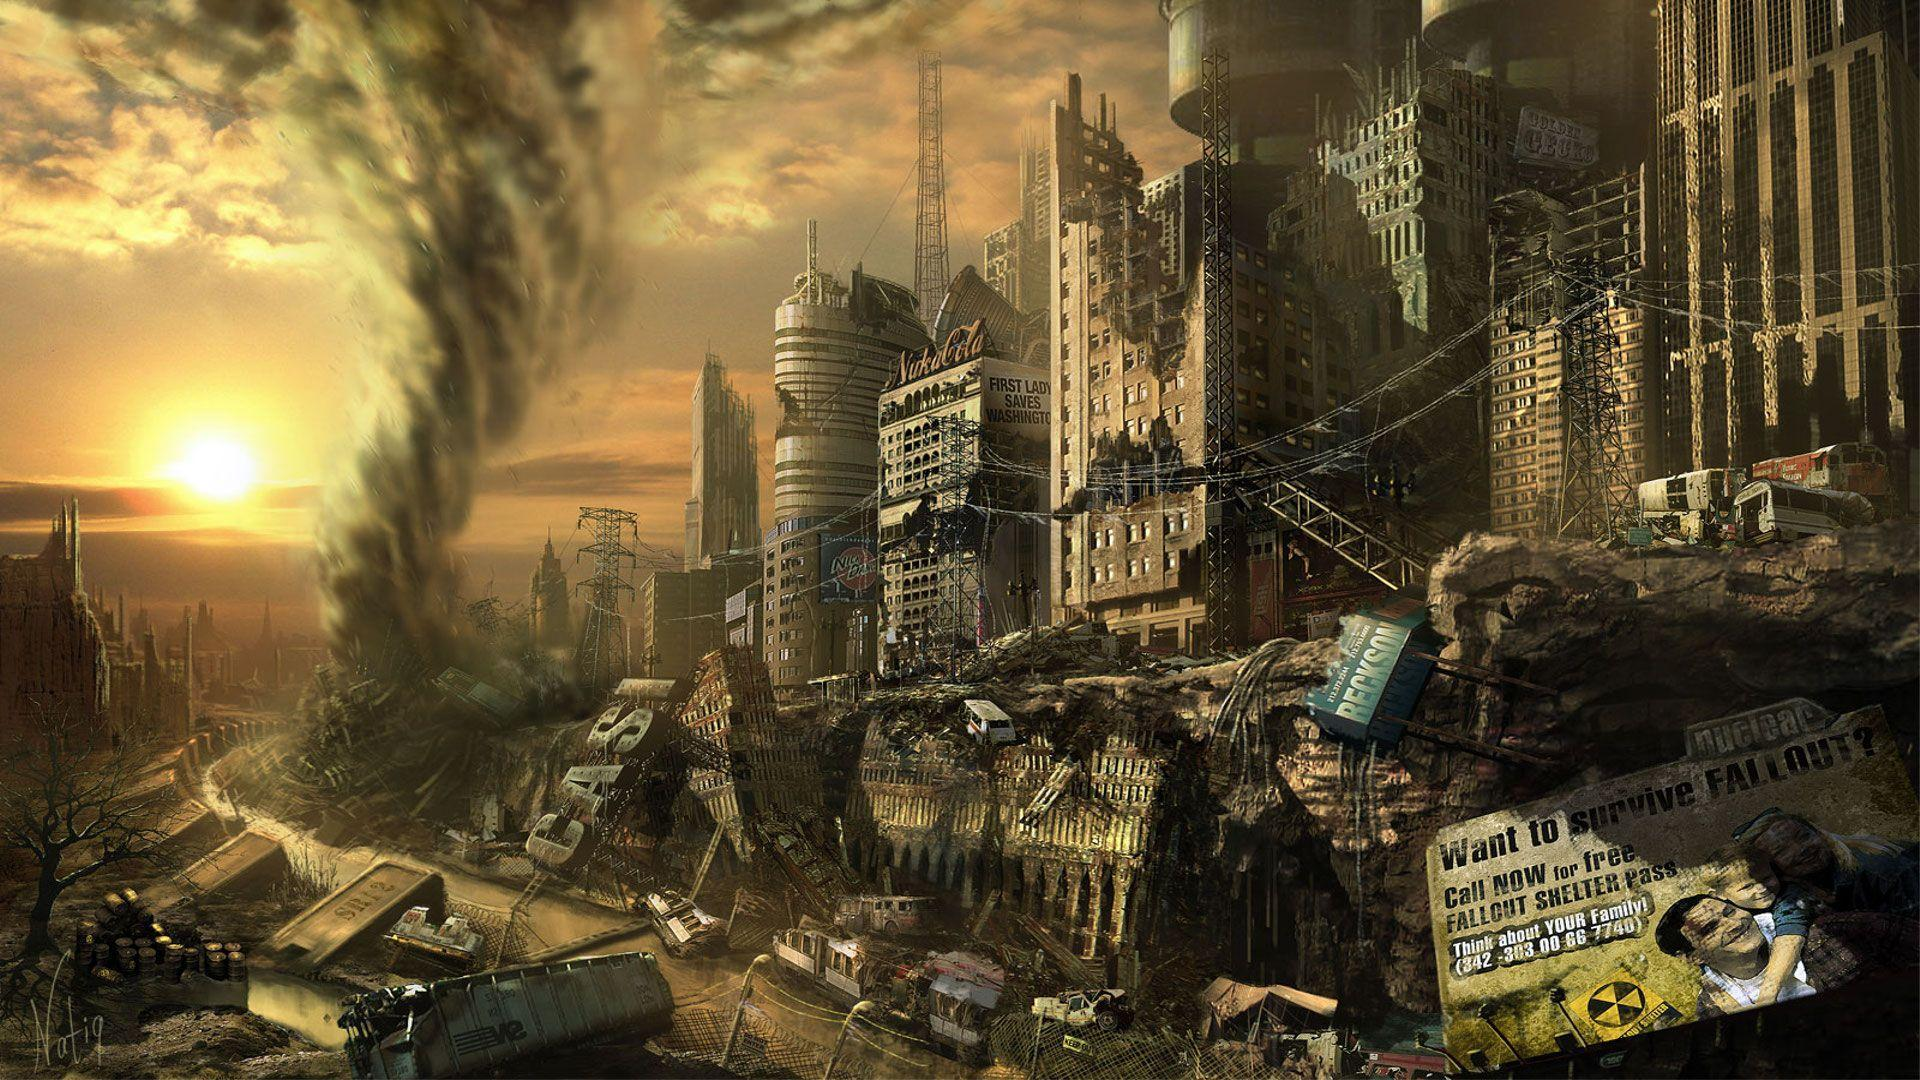 Fallout Wallpapers HD | HD Wallpapers, Backgrounds, Images, Art ...